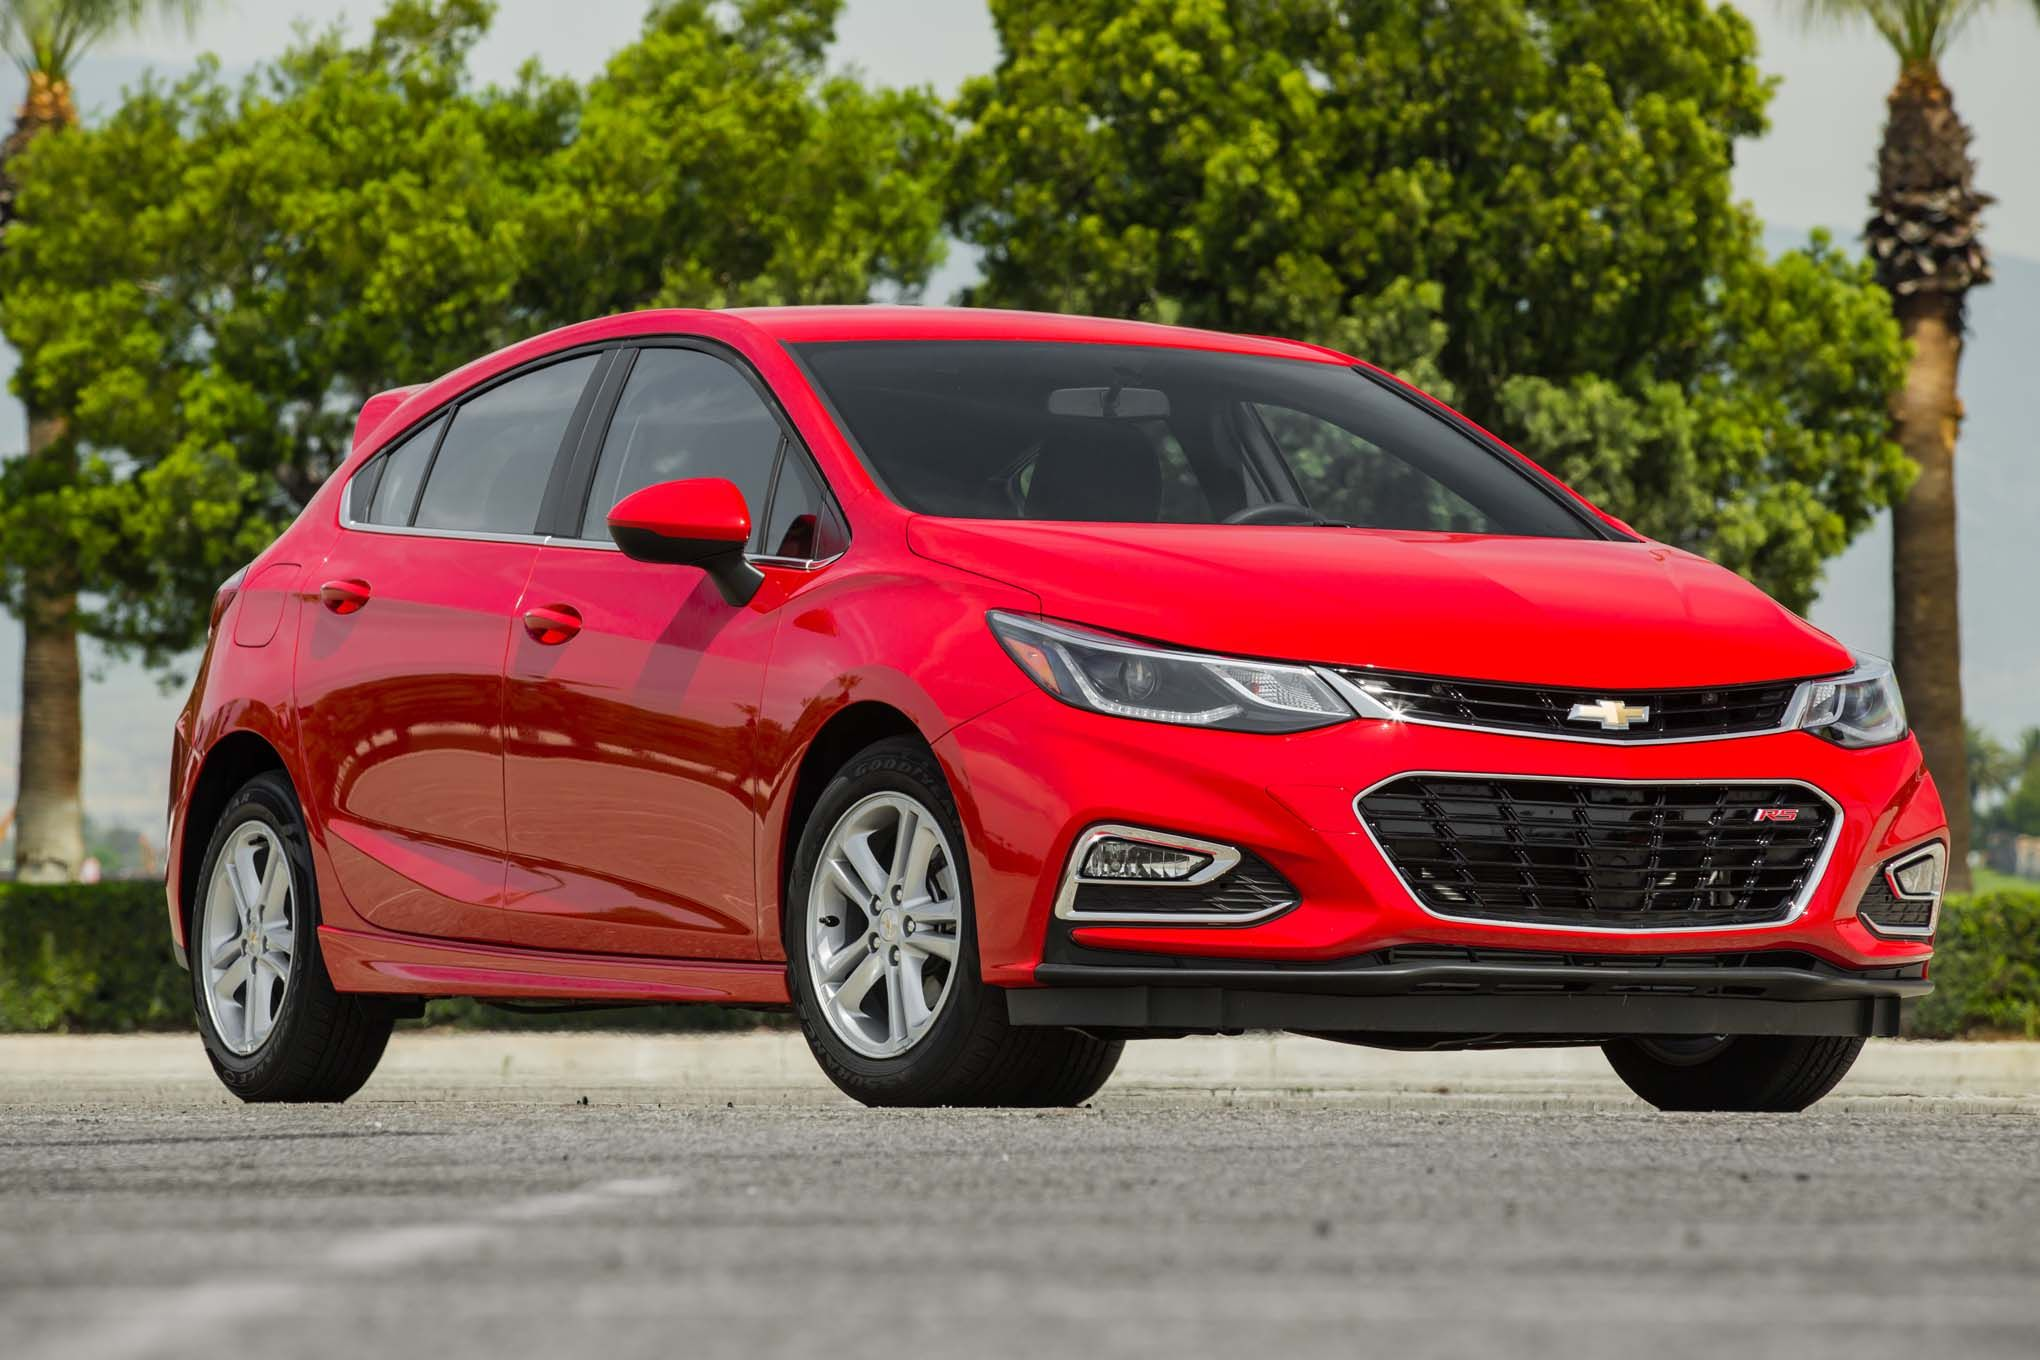 Grab Our New Chevrolet Cruze The Chevrolet Cruze Offers A Lot Of